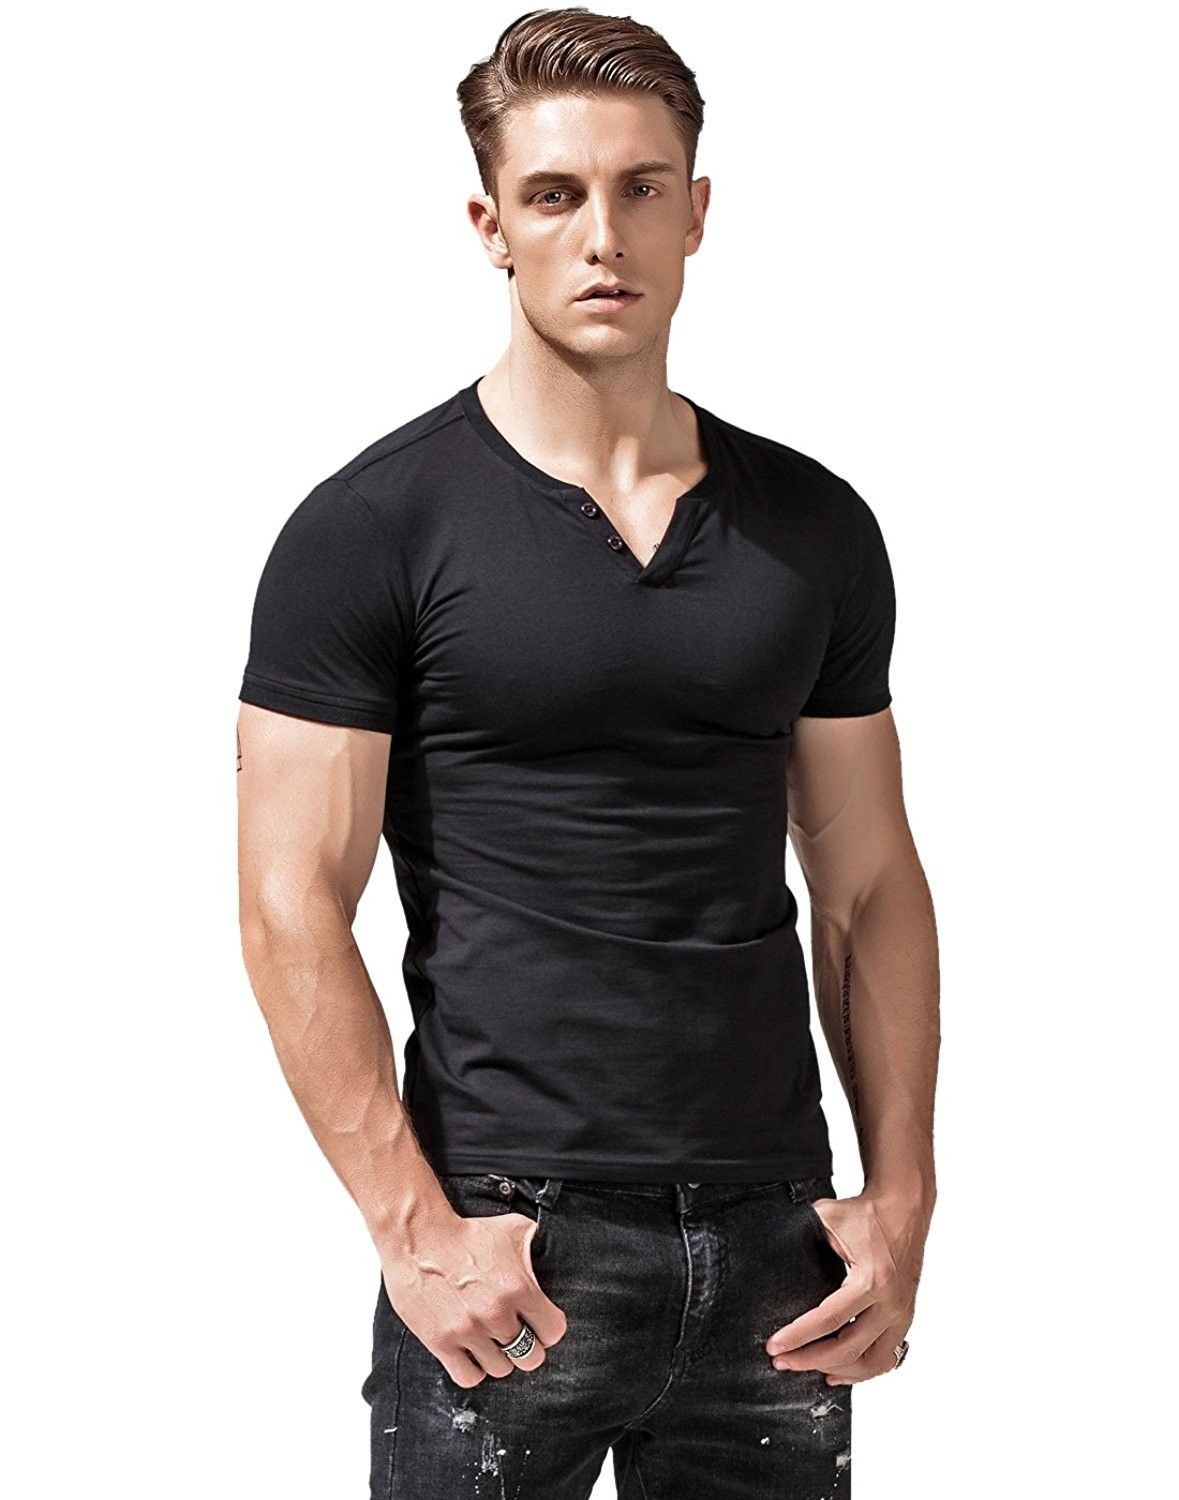 hot Men/'s V-Neck Slim Fit T-shirts Contrast Casual shirt Short Sleeve Outfit Top